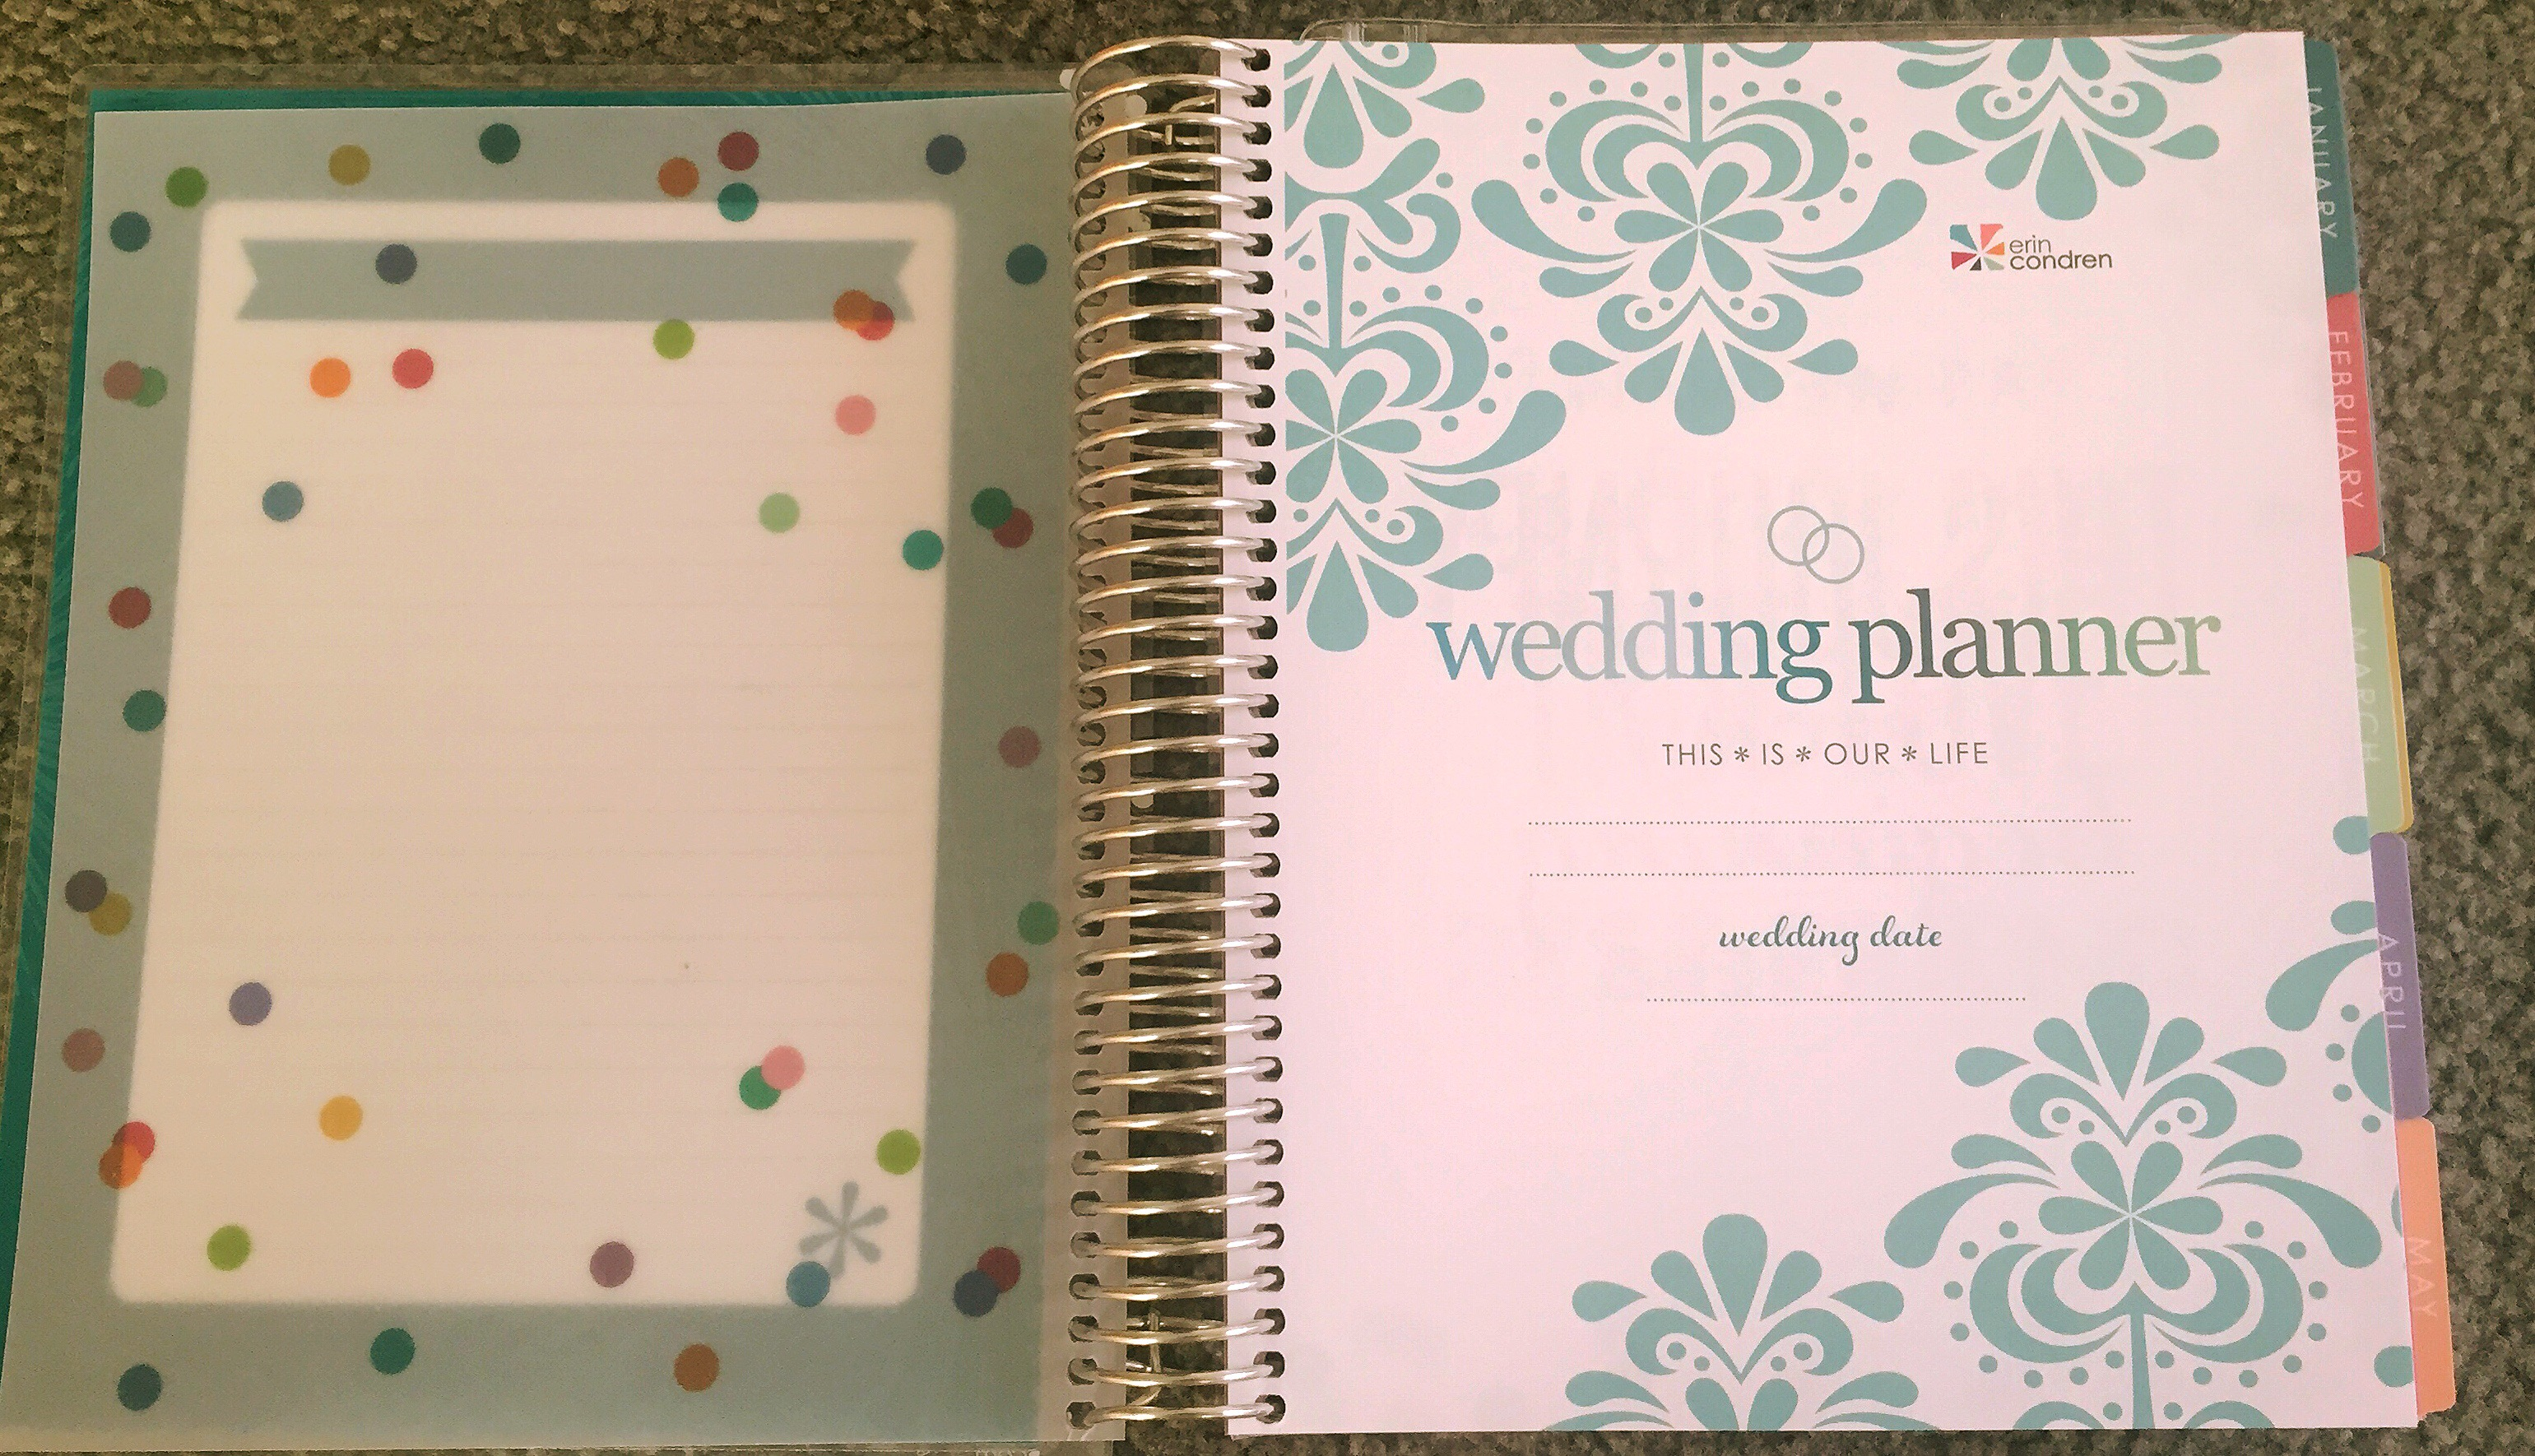 The Tips And Suggested Schedules Are Really Helpful Since There More Moving Parts Than Youd Even Think With A Wedding